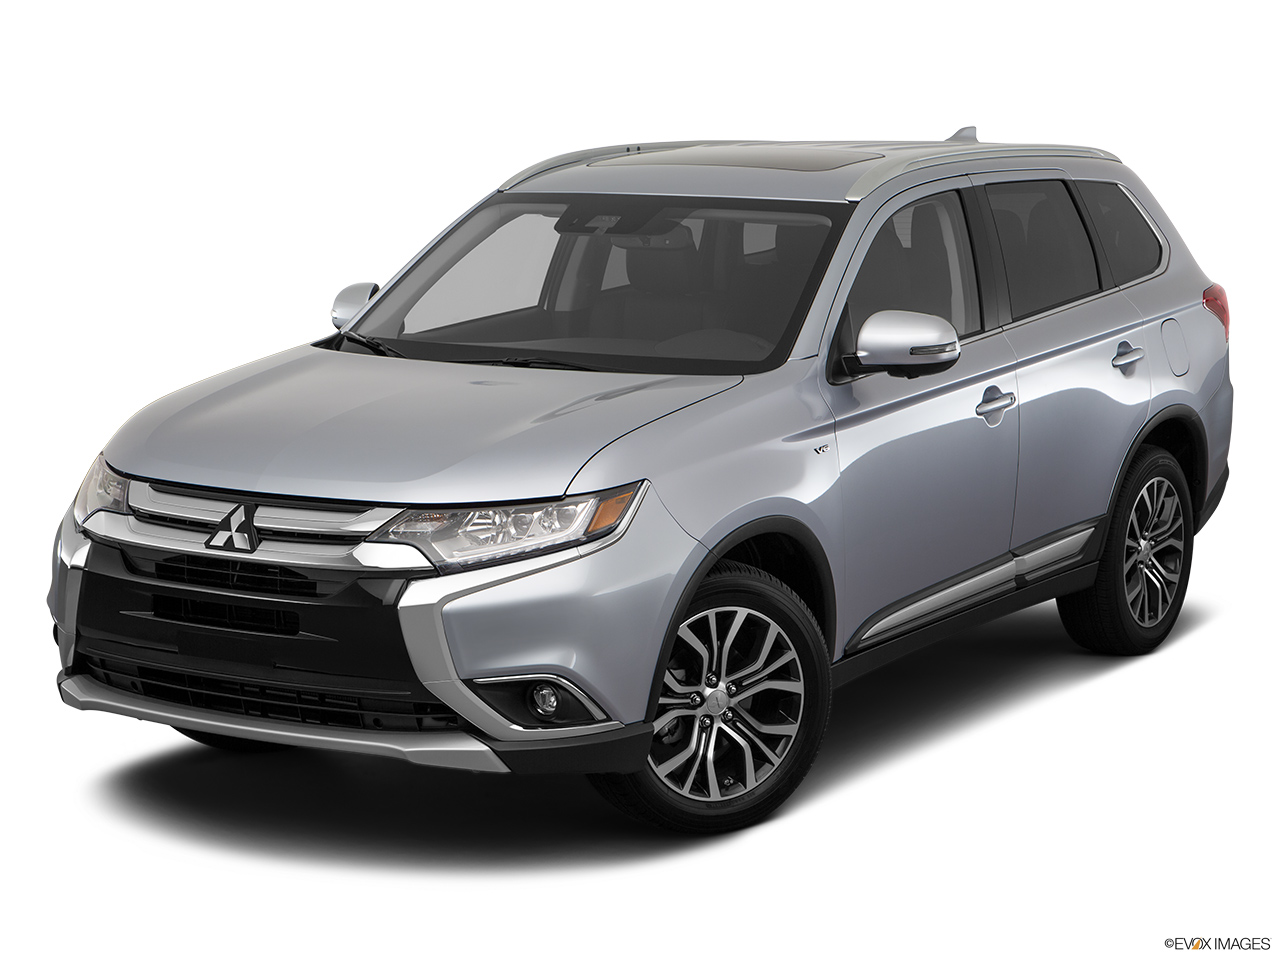 Mitsubishi Outlander 2018 3.0L GLS 7-Seater in UAE: New ...